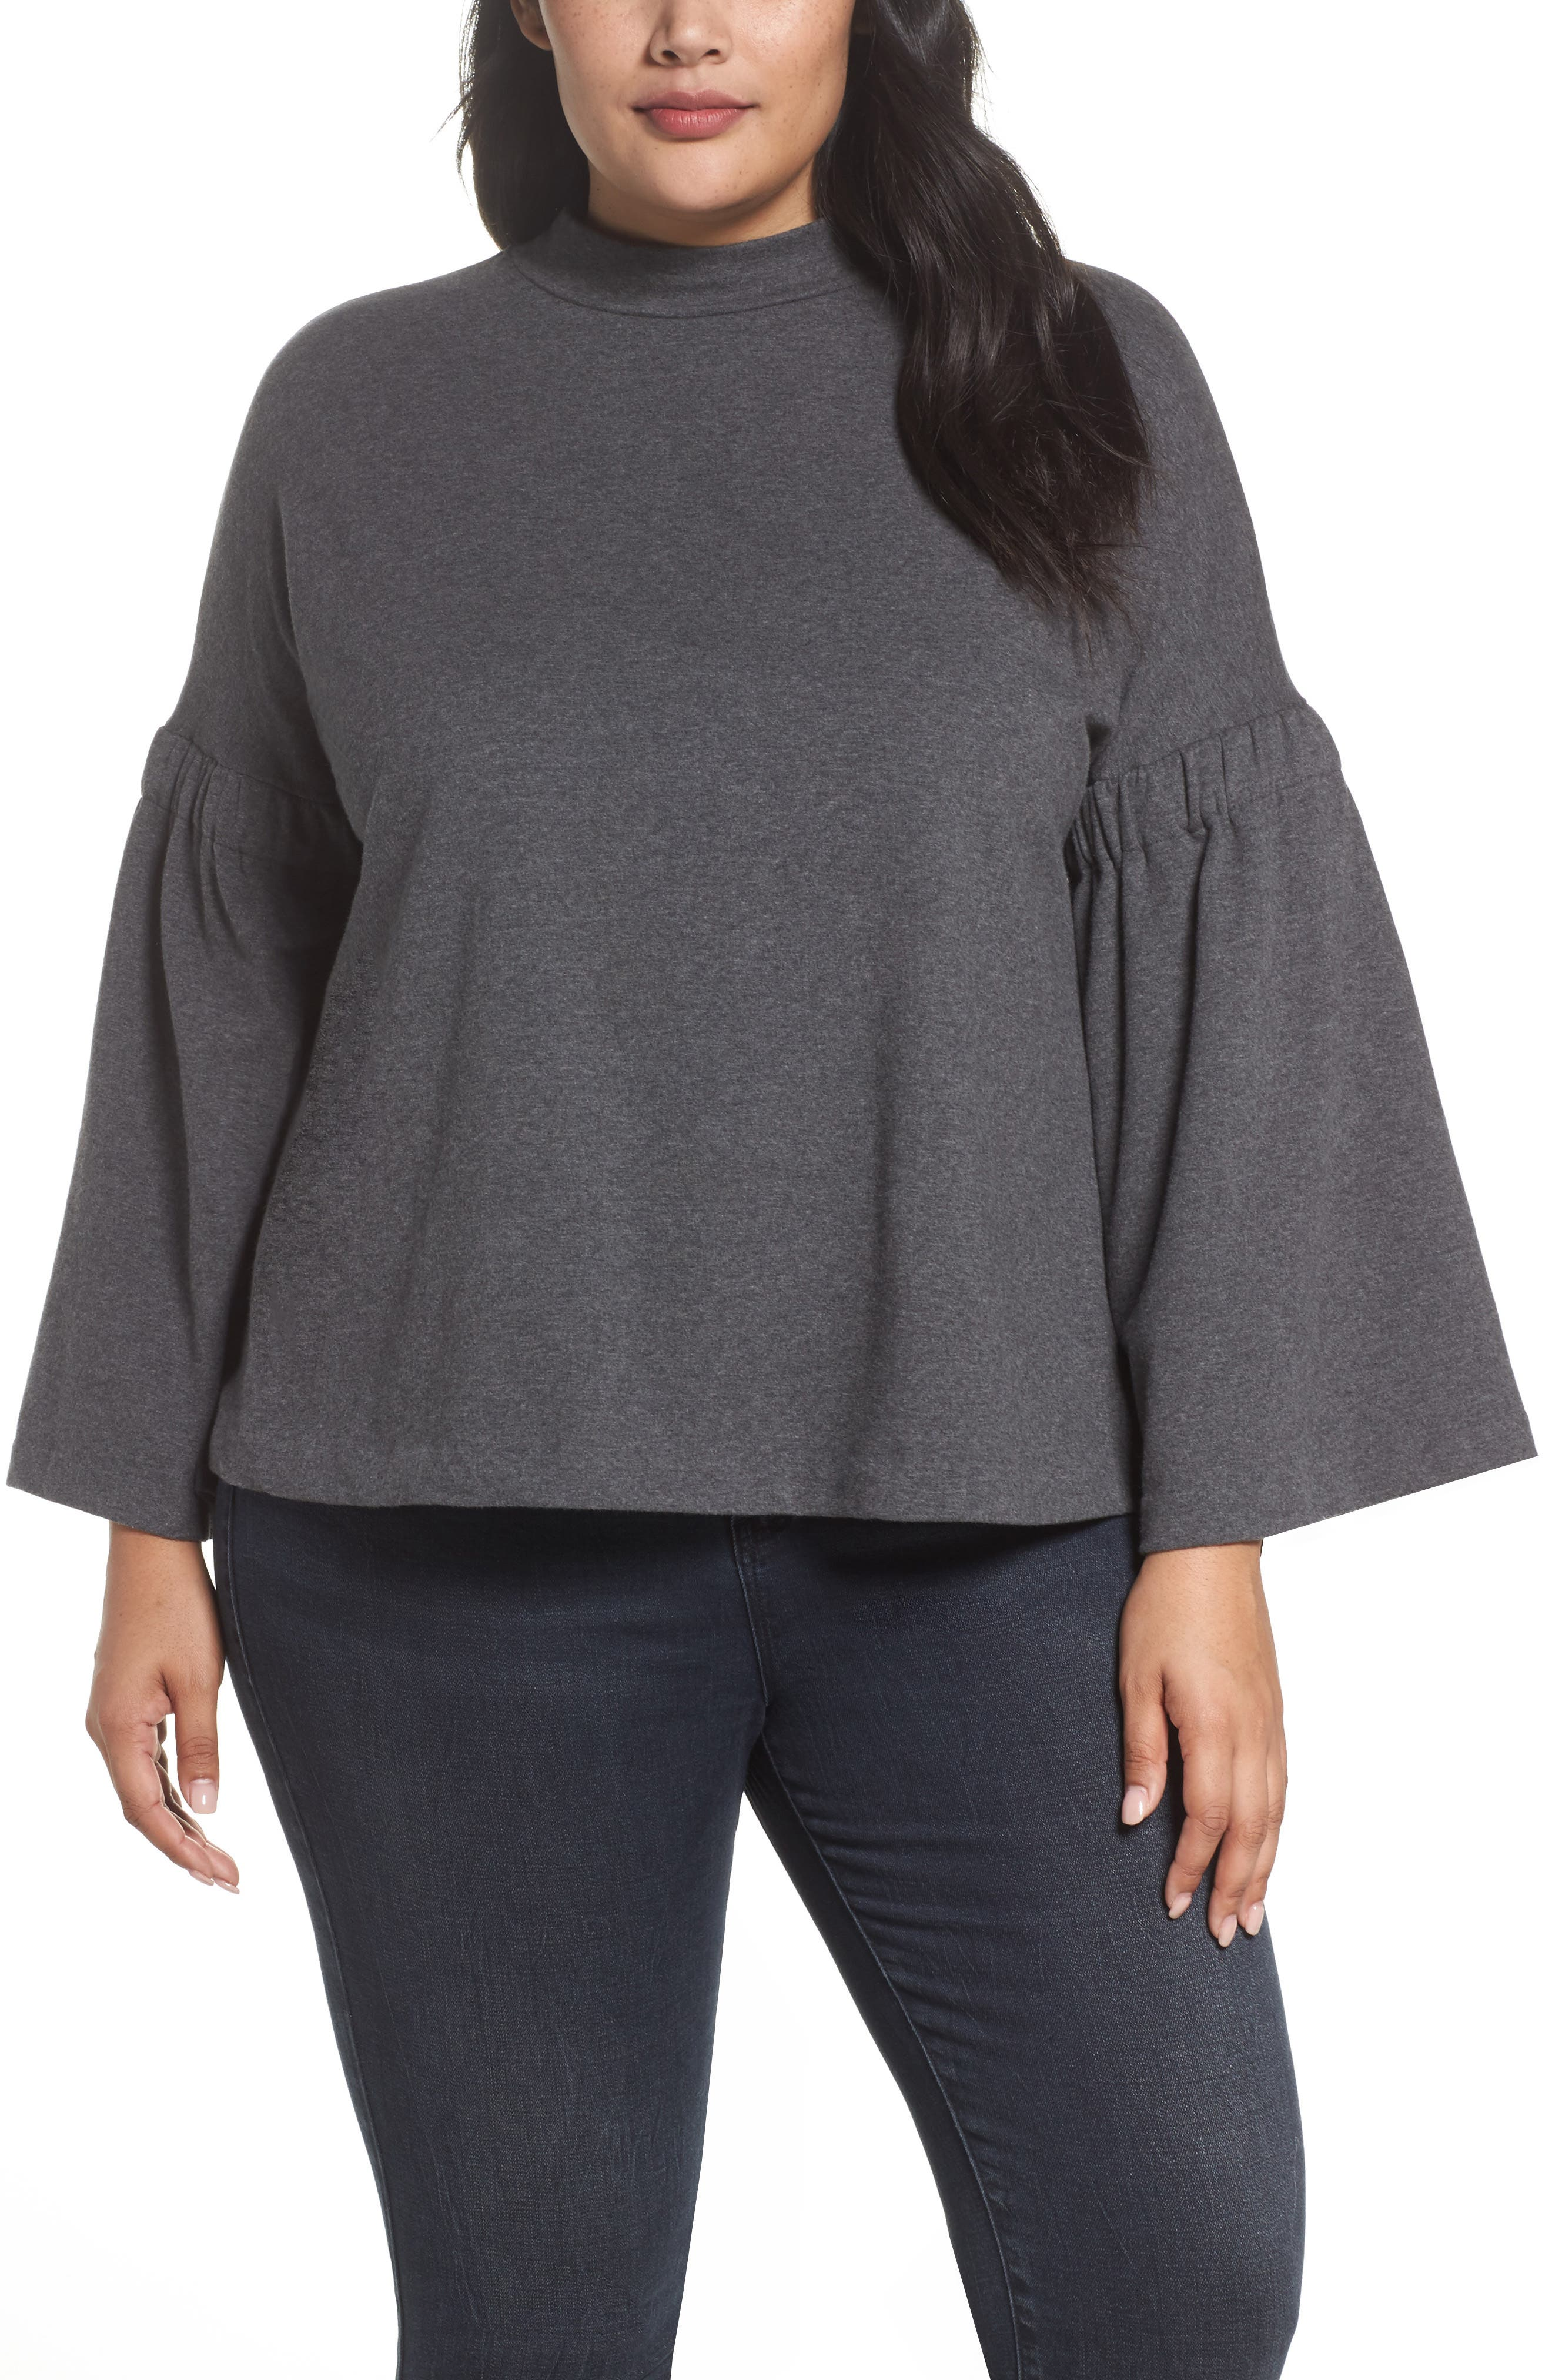 Bell Sleeve Top,                             Main thumbnail 1, color,                             023